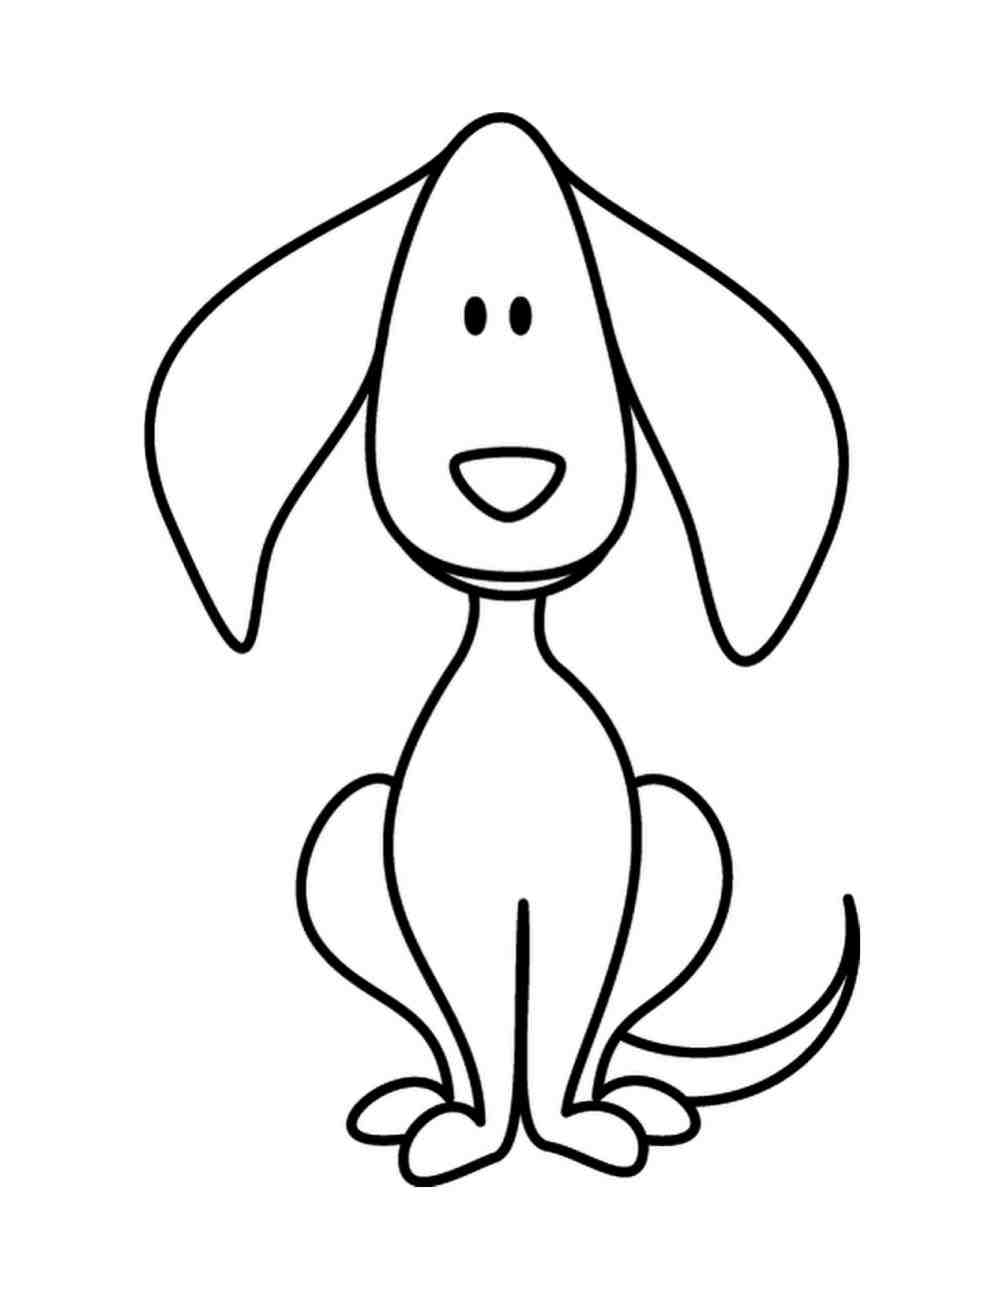 1007x1304 The Images Collection Of Dog Drawing For Kids Sketch Kid Of A S